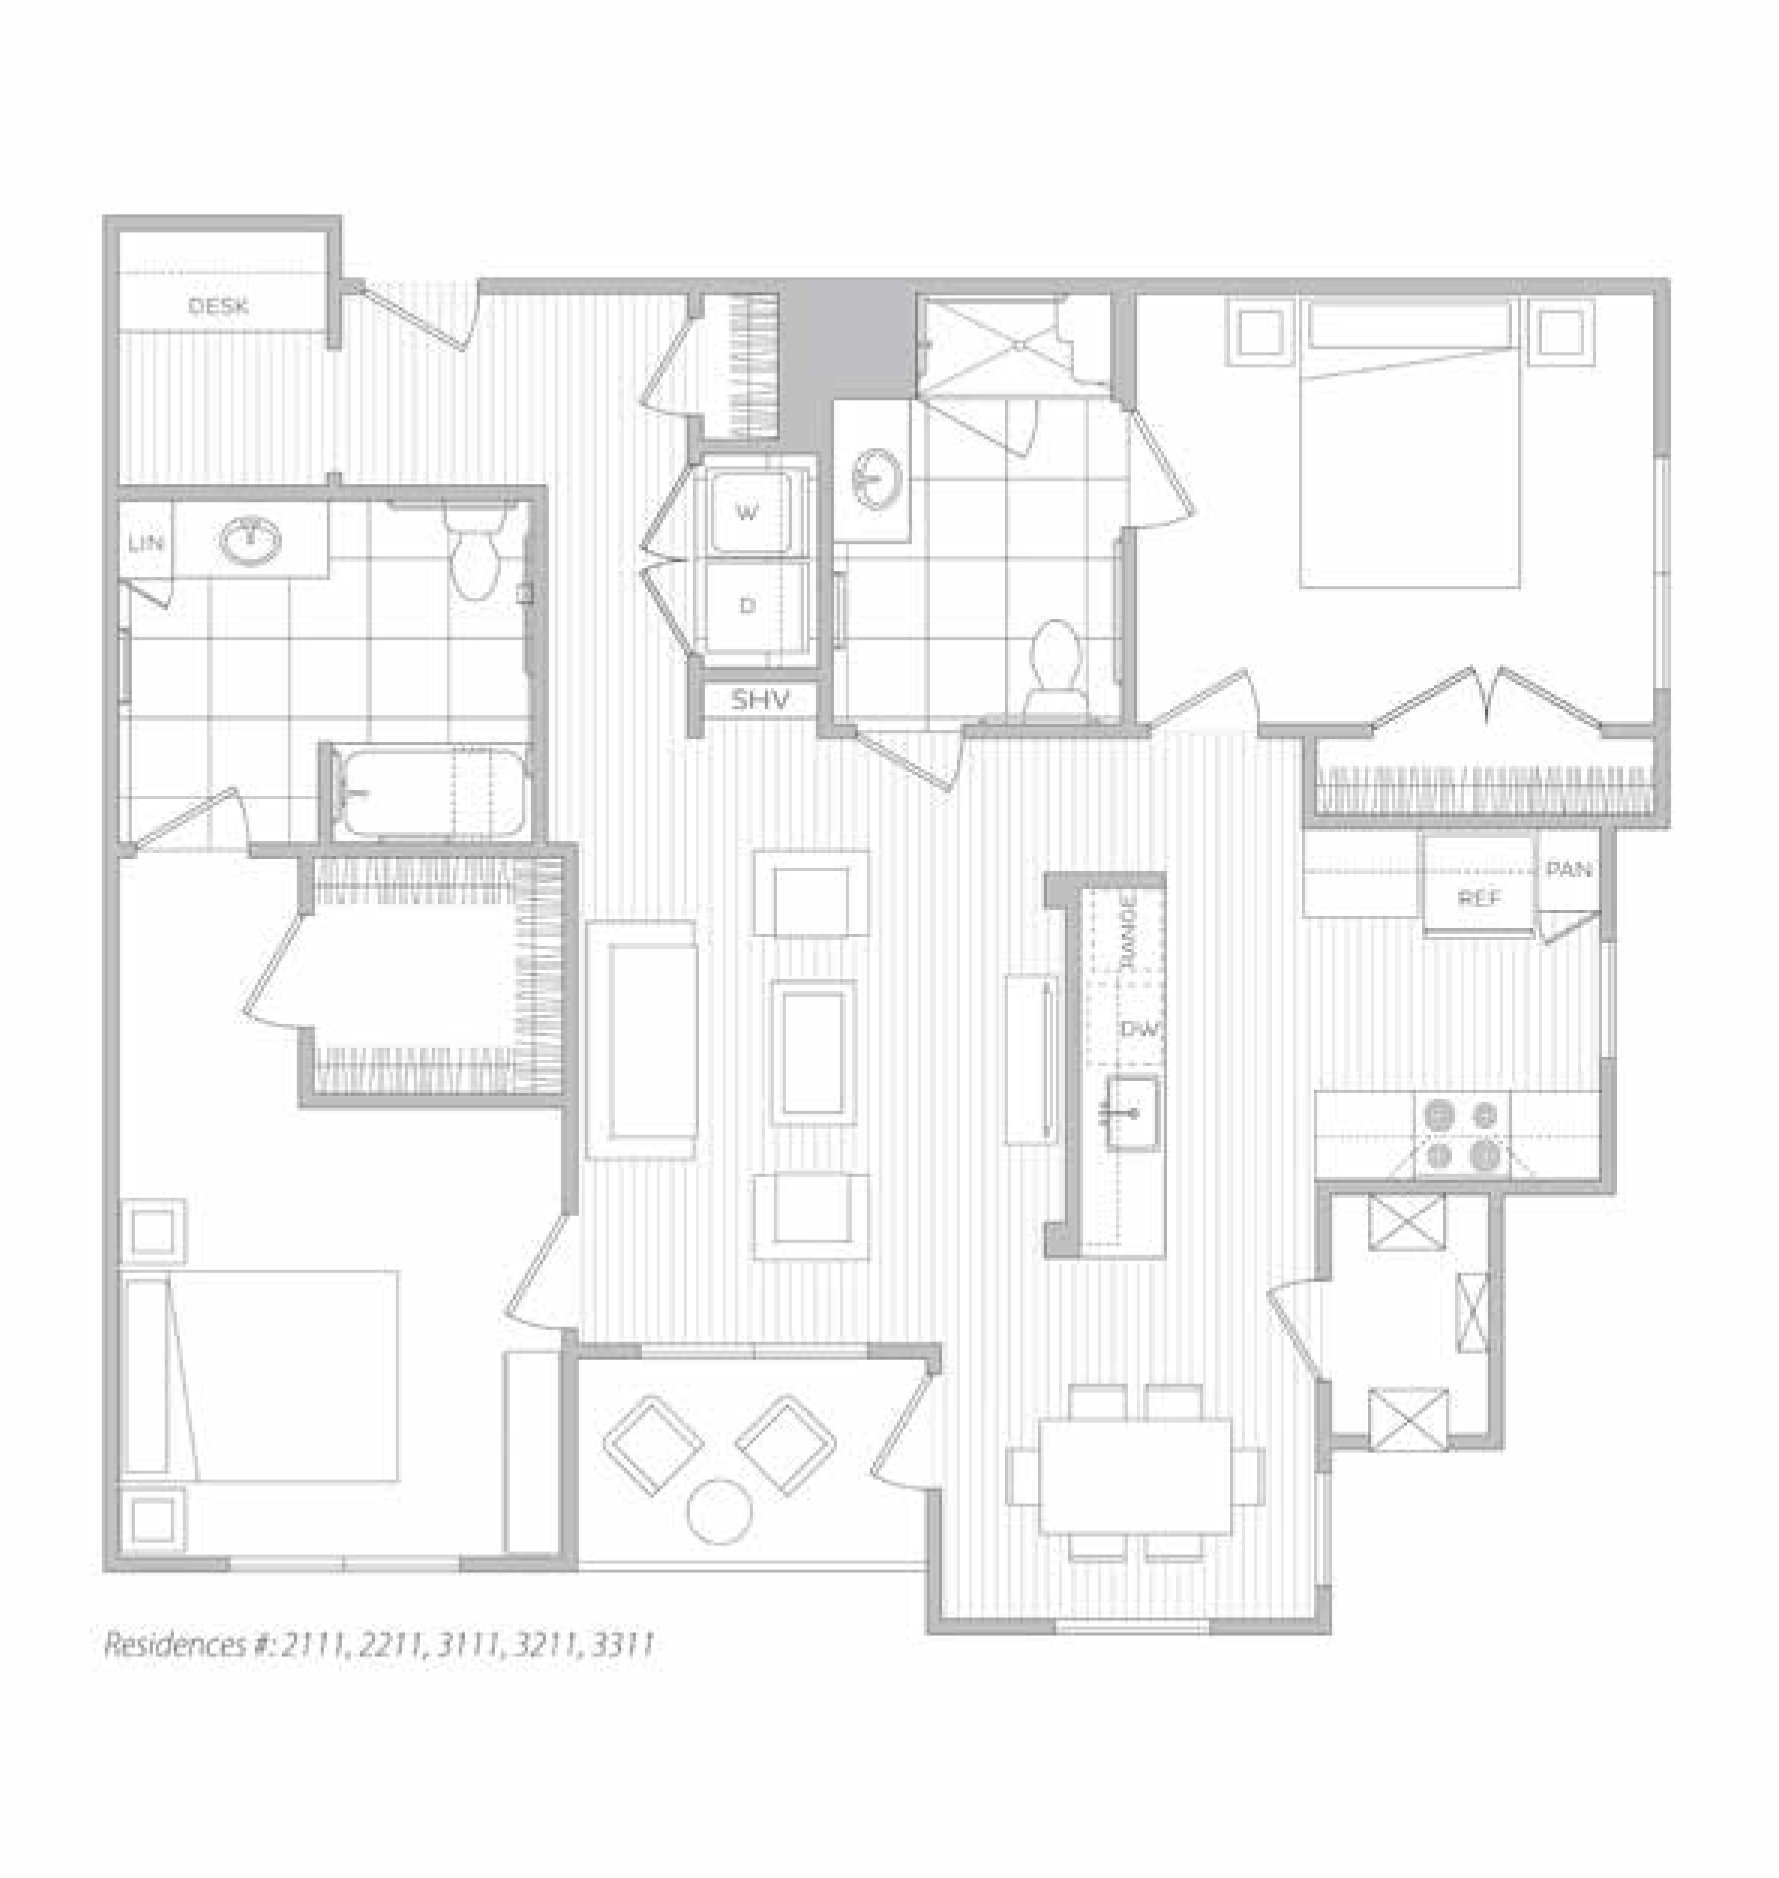 floor plan image of apartment 3211